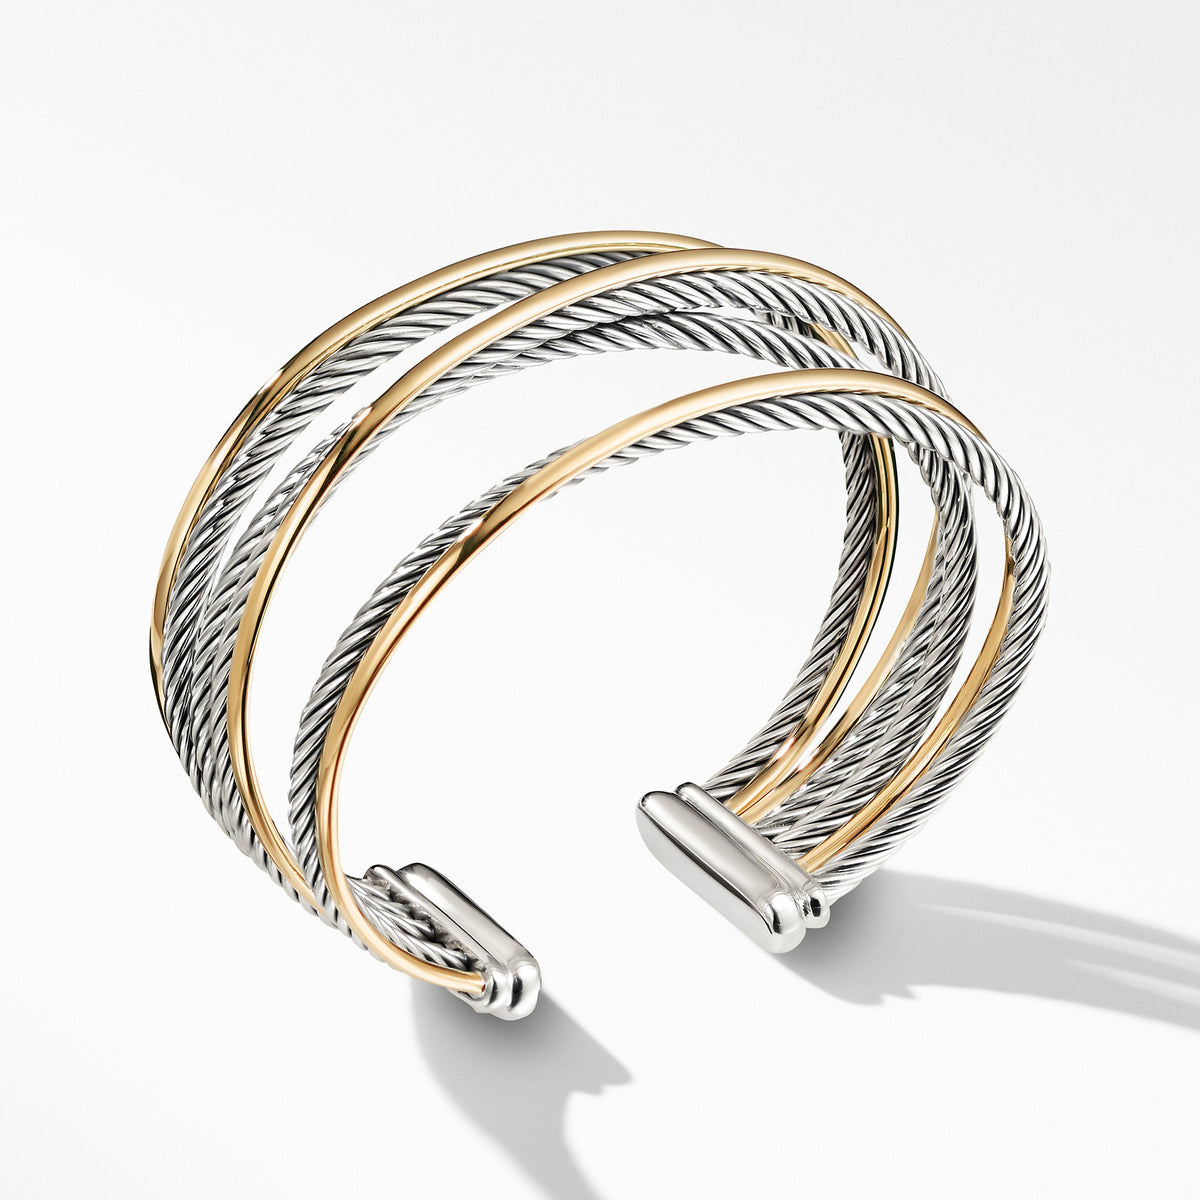 Four-Row Cuff Bracelet with Gold